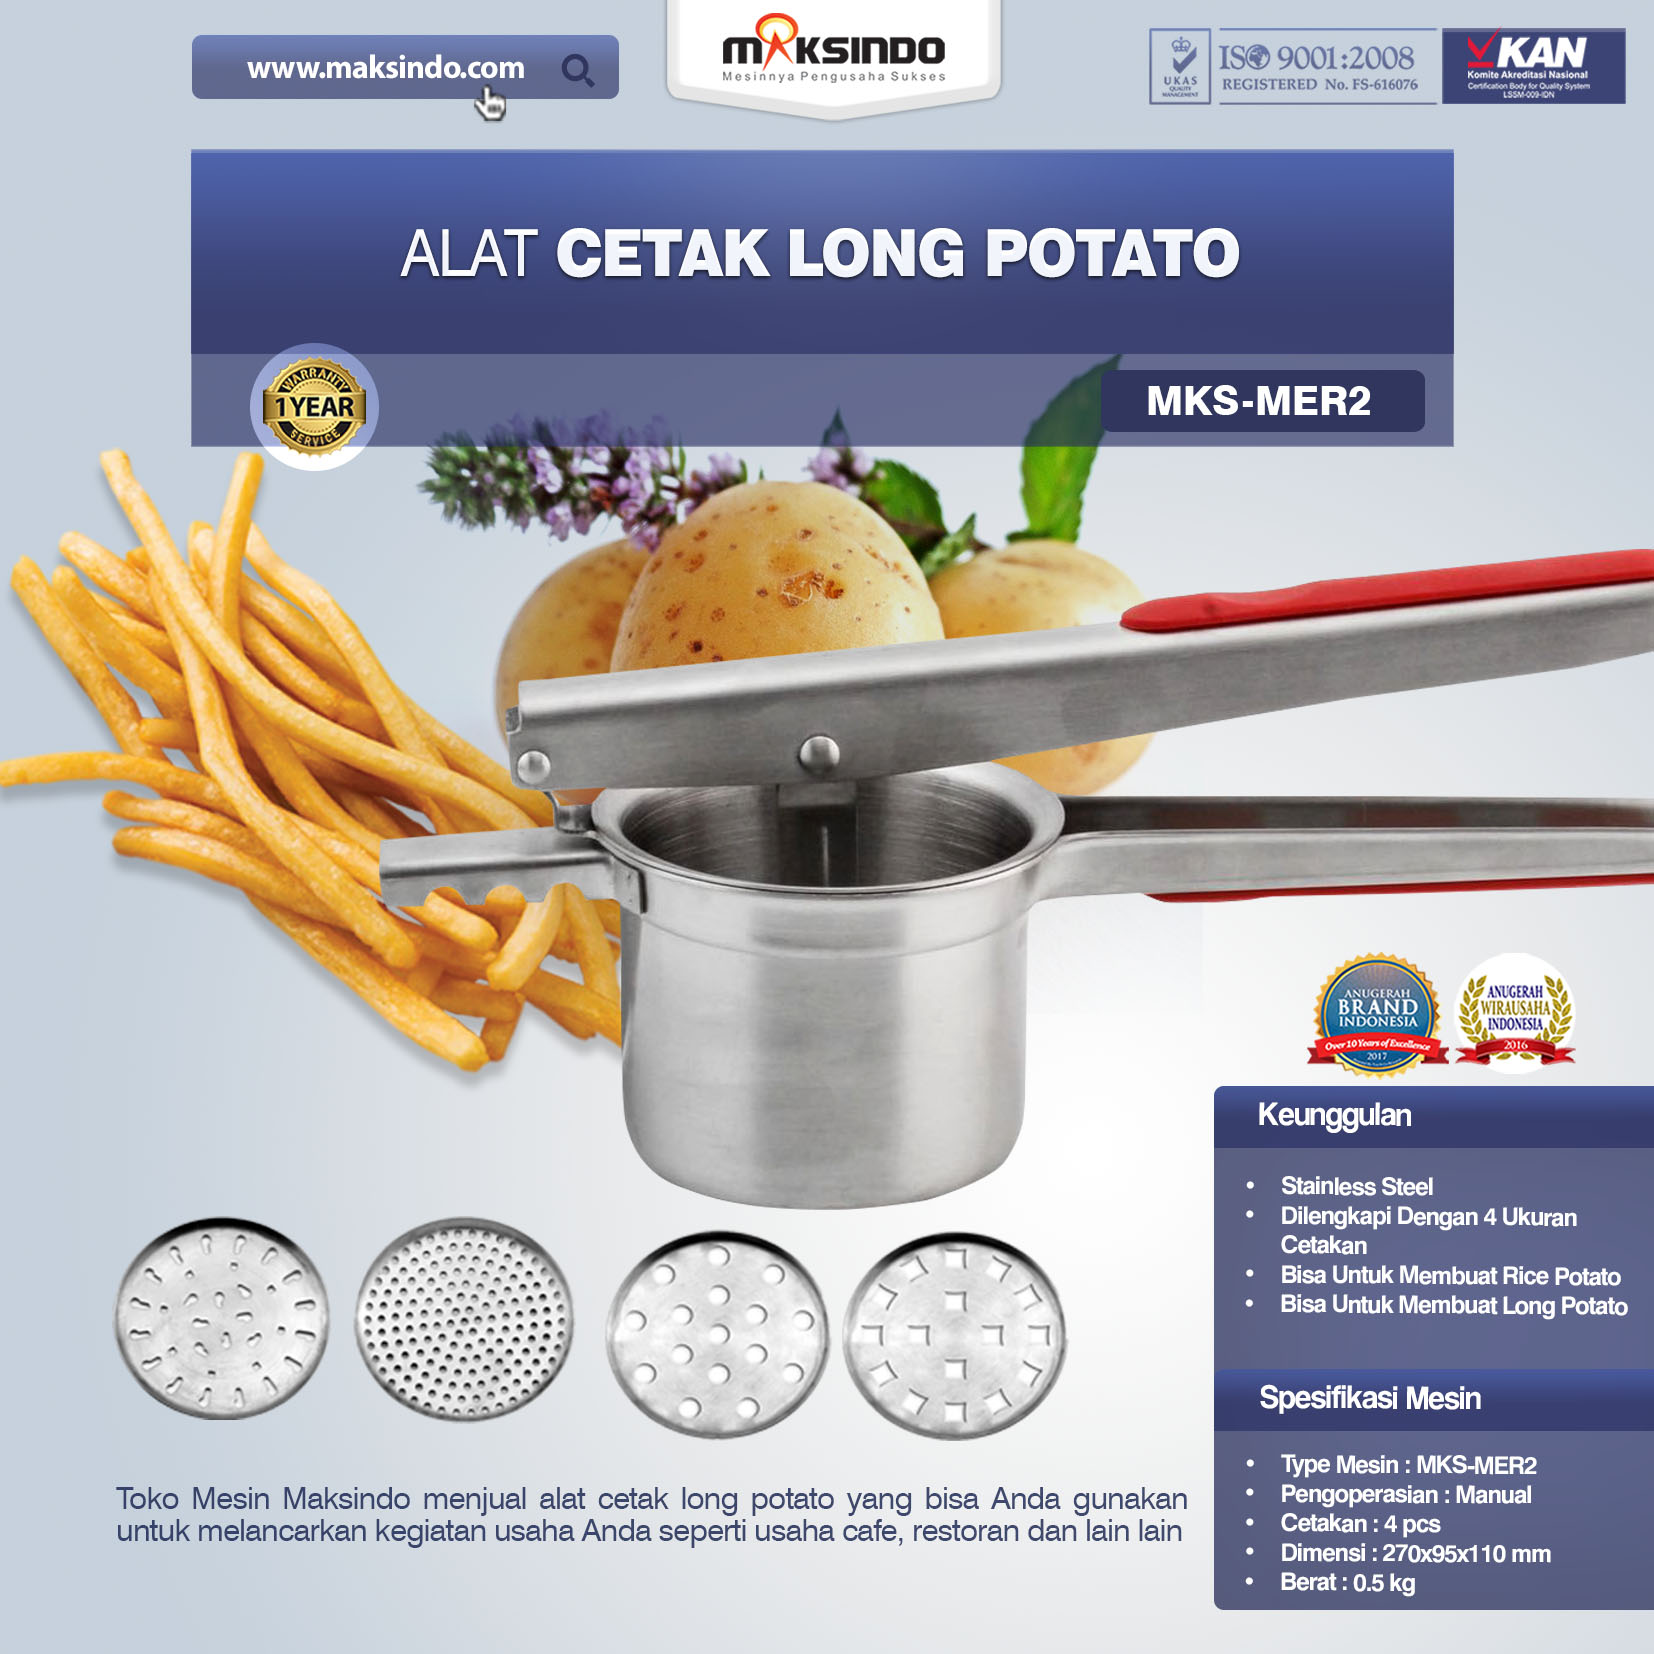 Jual Paket Mesin Long Potato Kentang Panjang di Medan